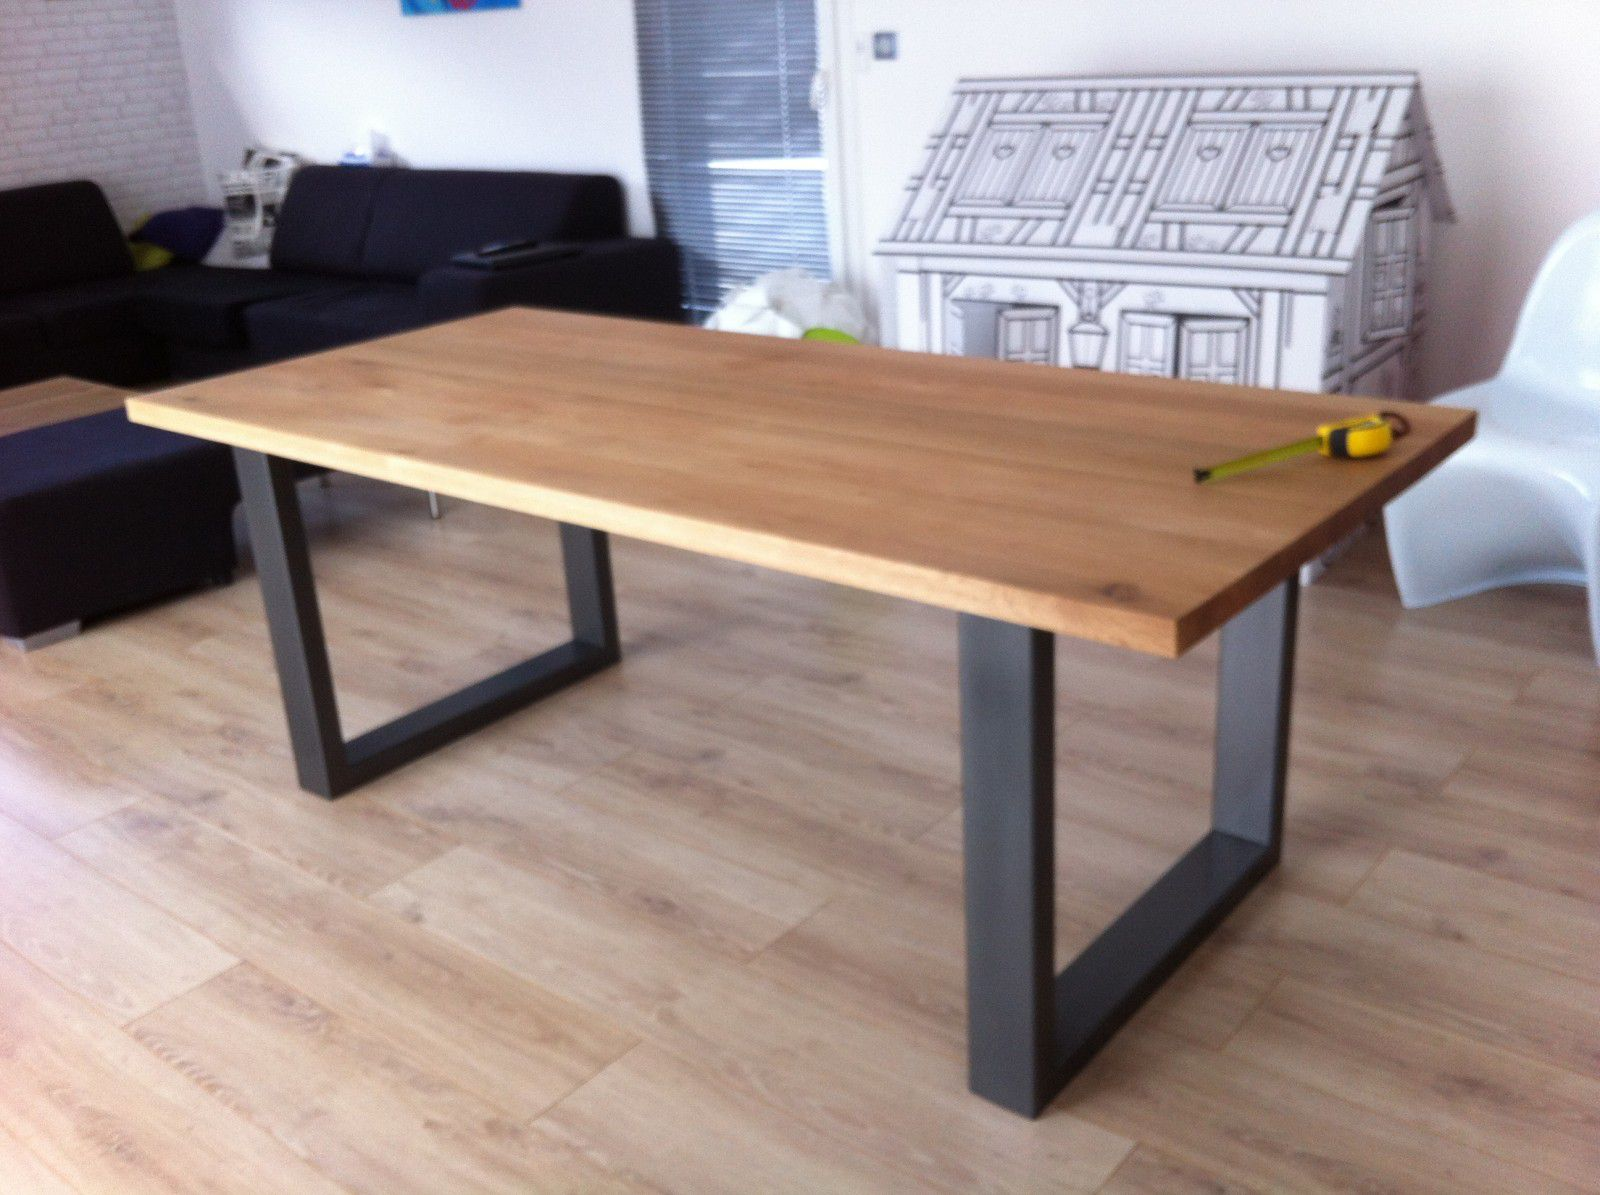 Tres grande table salle a manger maison design for Table salle a manger 3 suisses